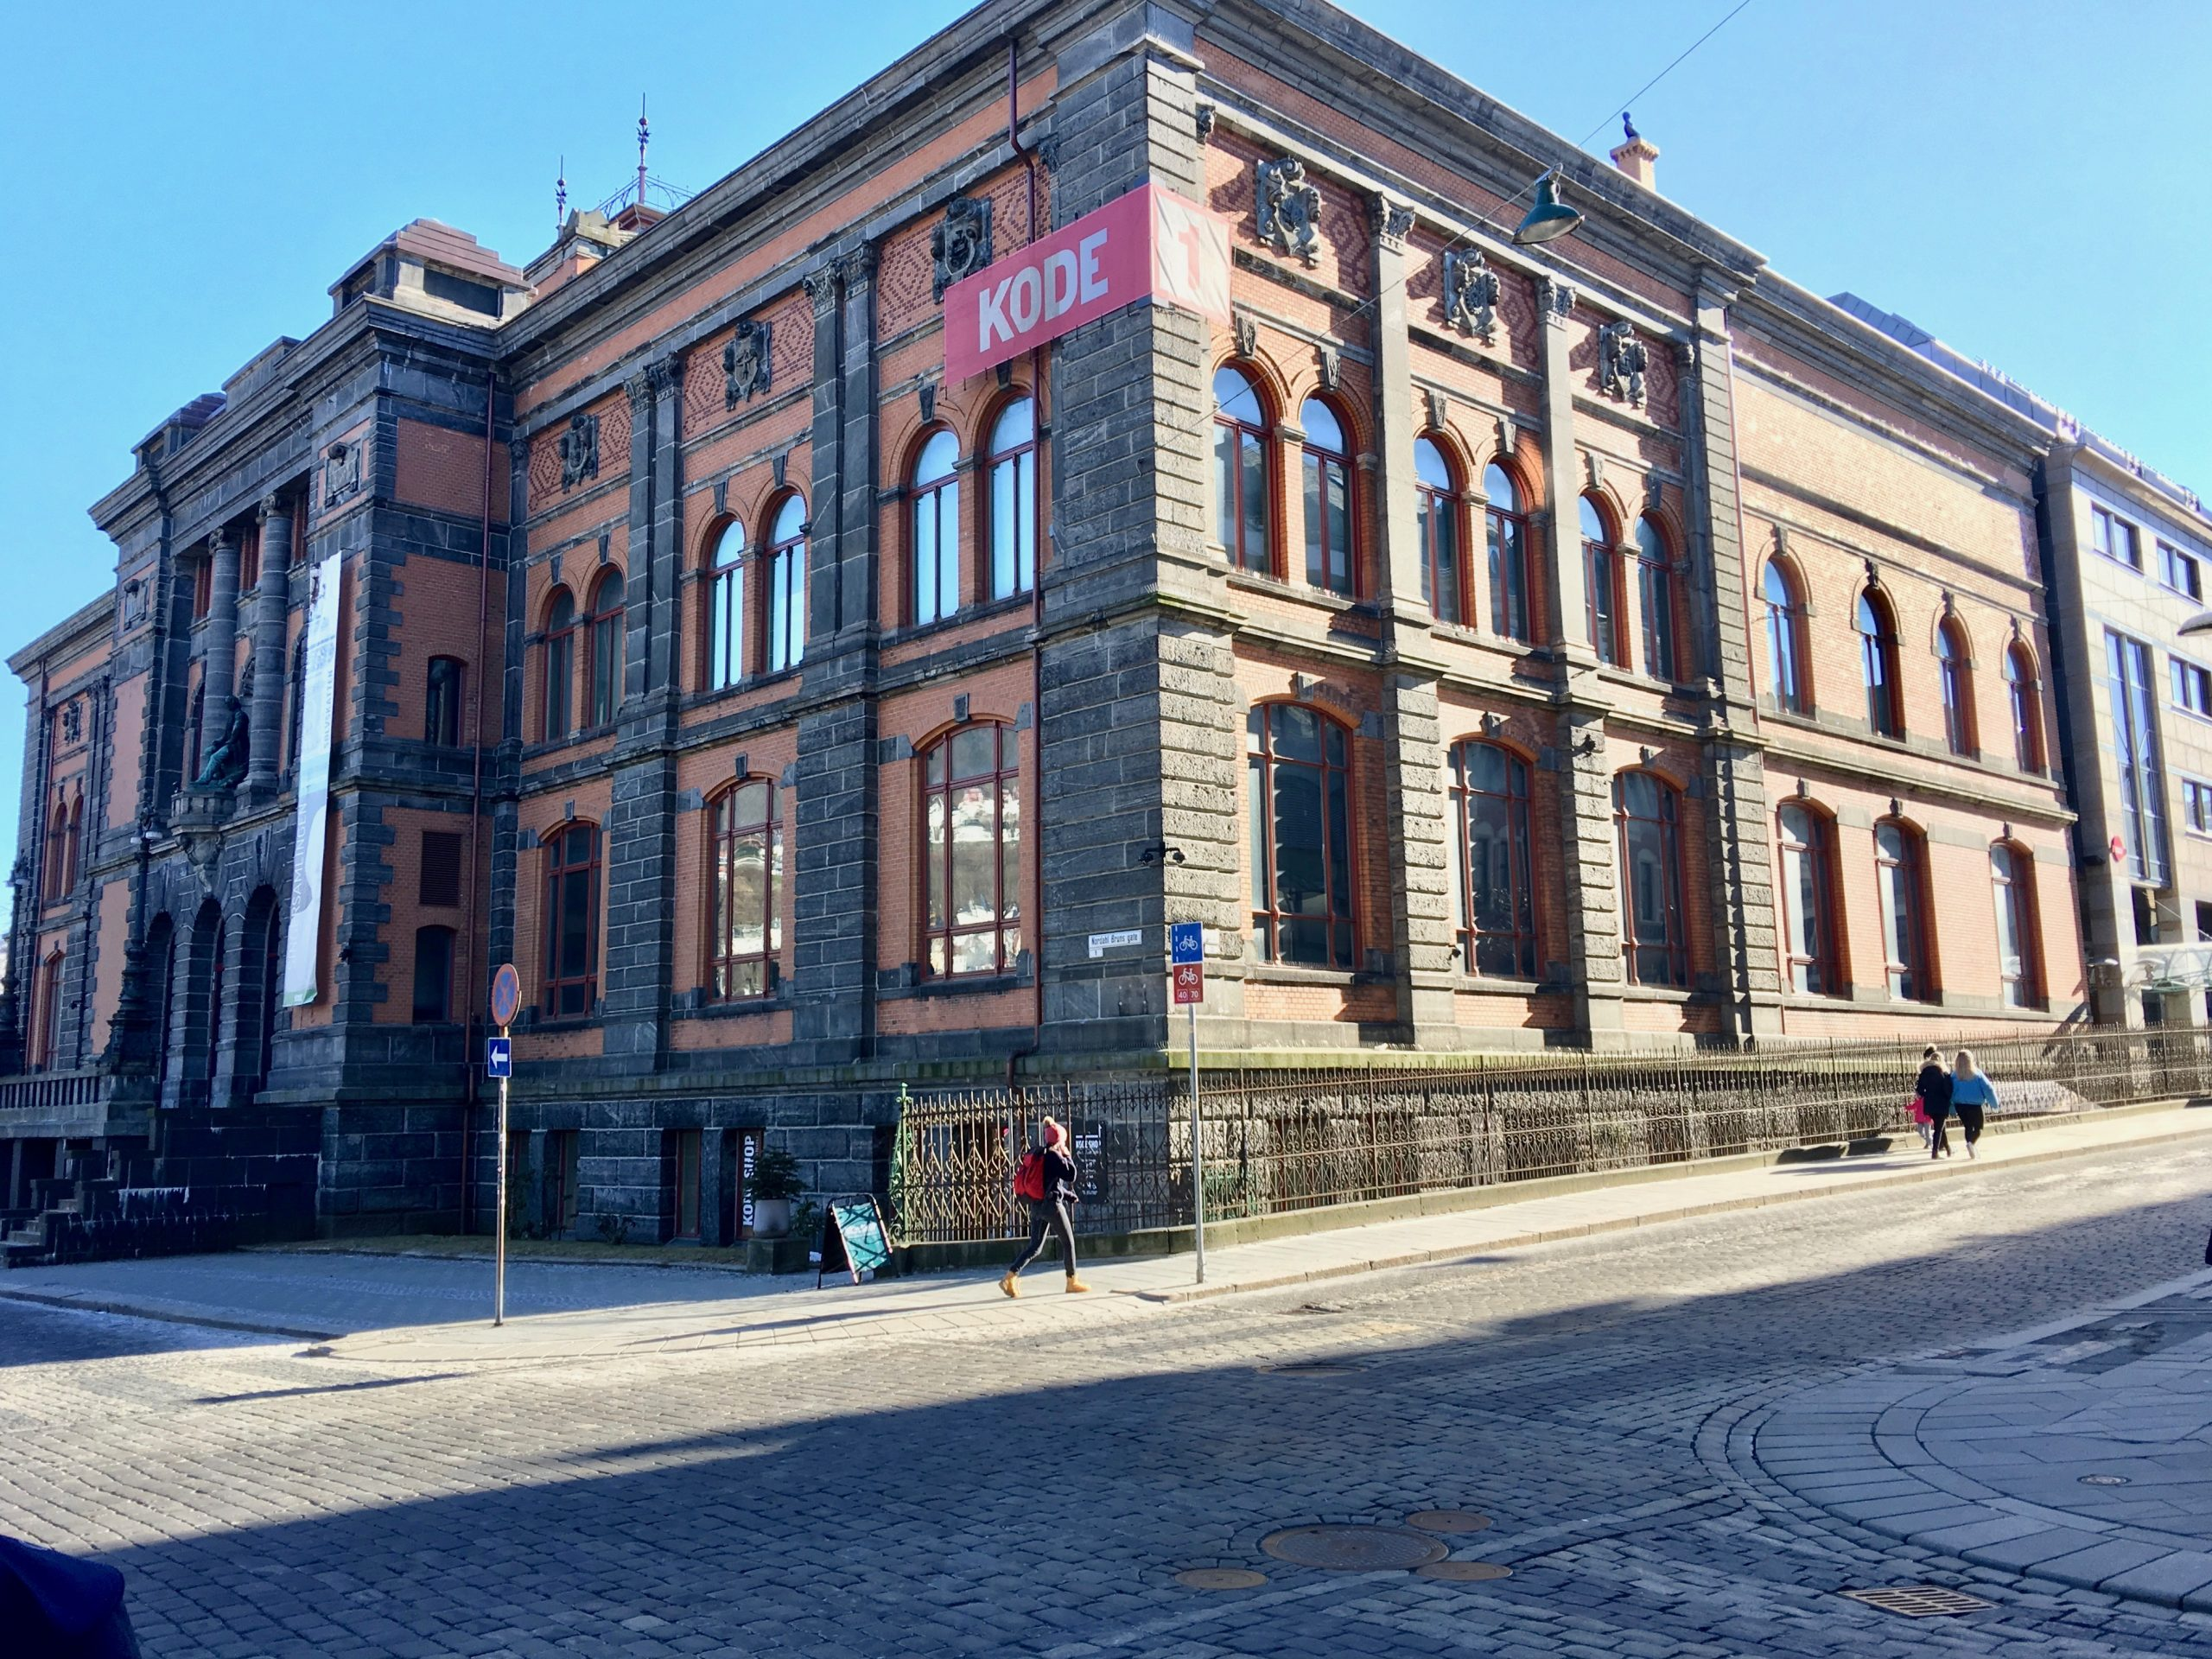 Kode Museum & Art Gallery - Must Visit Place In Stavanger Region, Norway